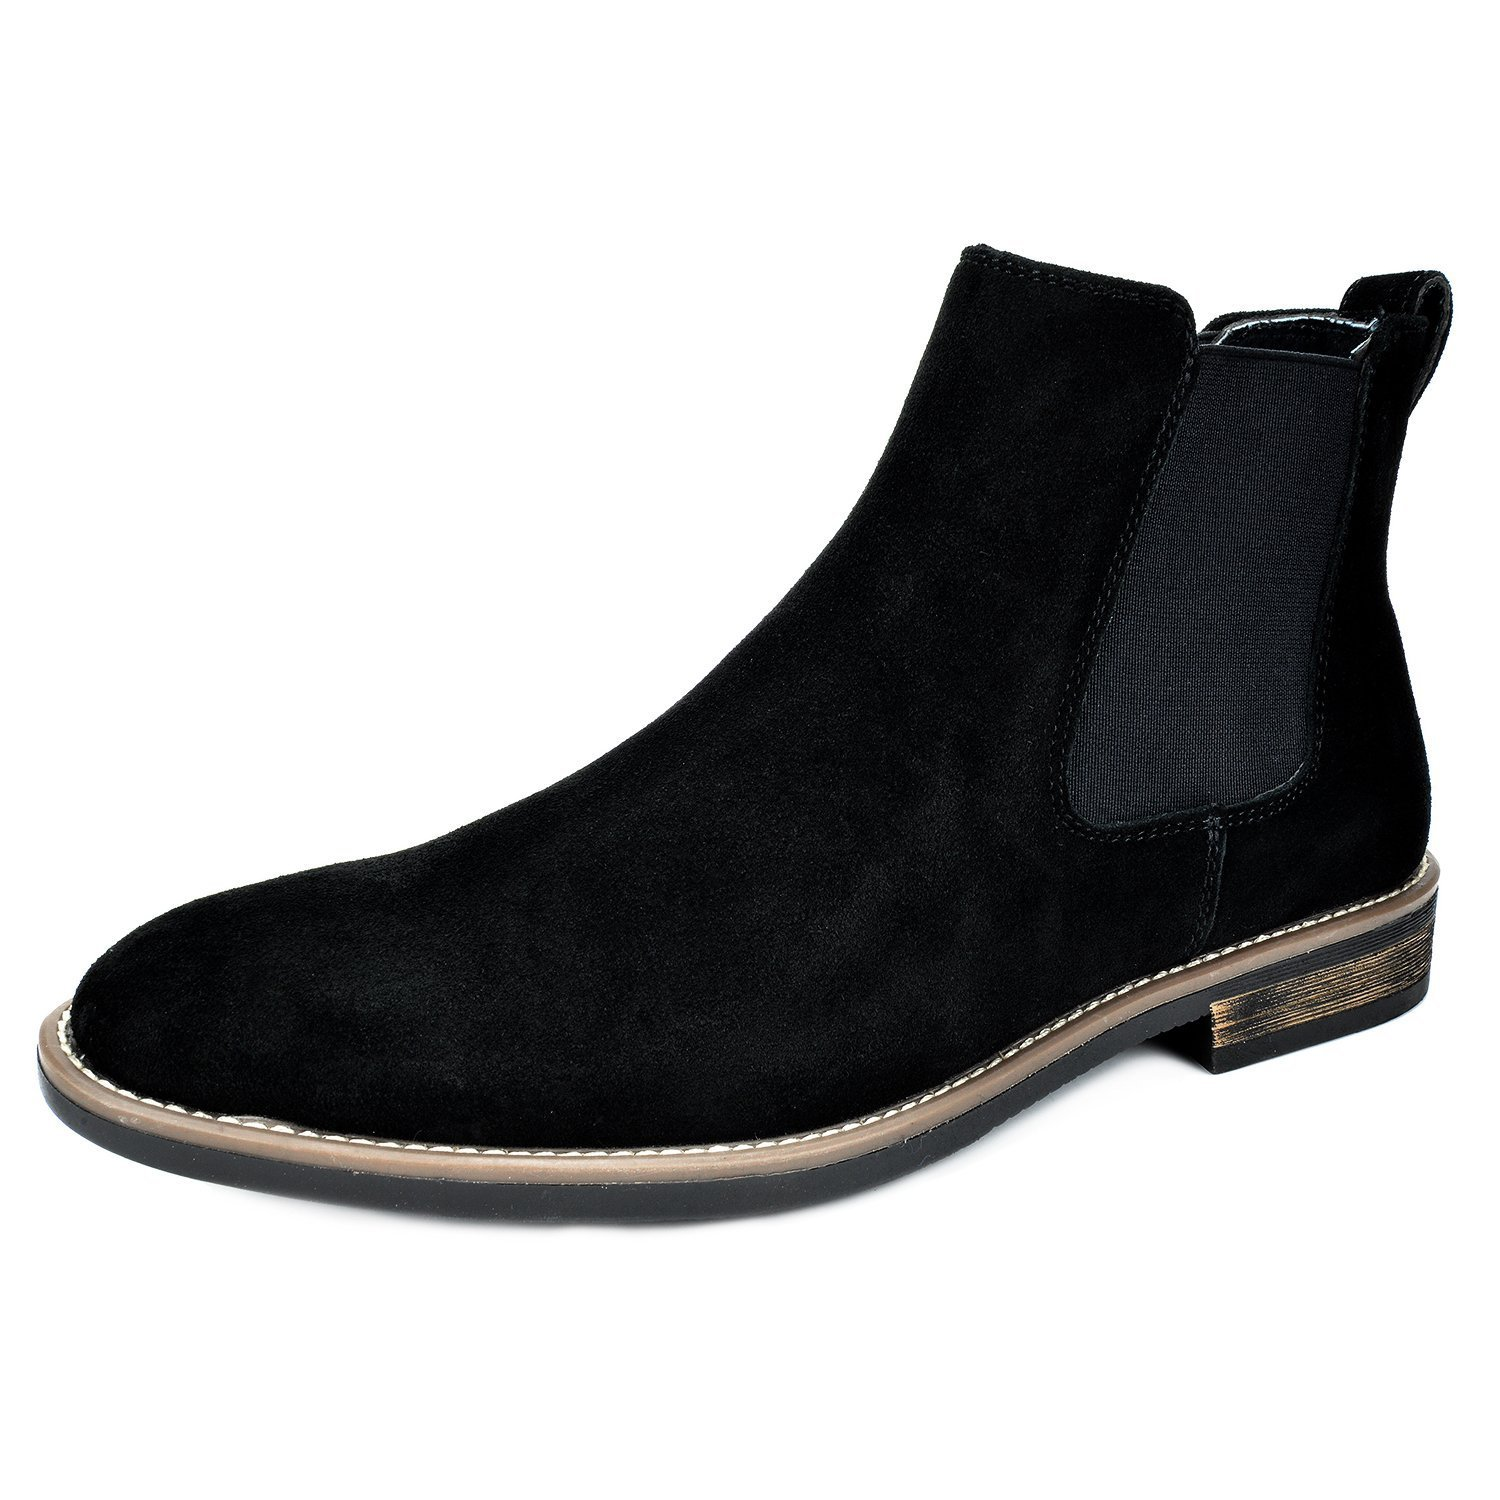 BRUNO MARC NEW YORK Bruno Marc Men's Urban-06 Black Suede Leather Chukka Ankle Boots - 12 M US